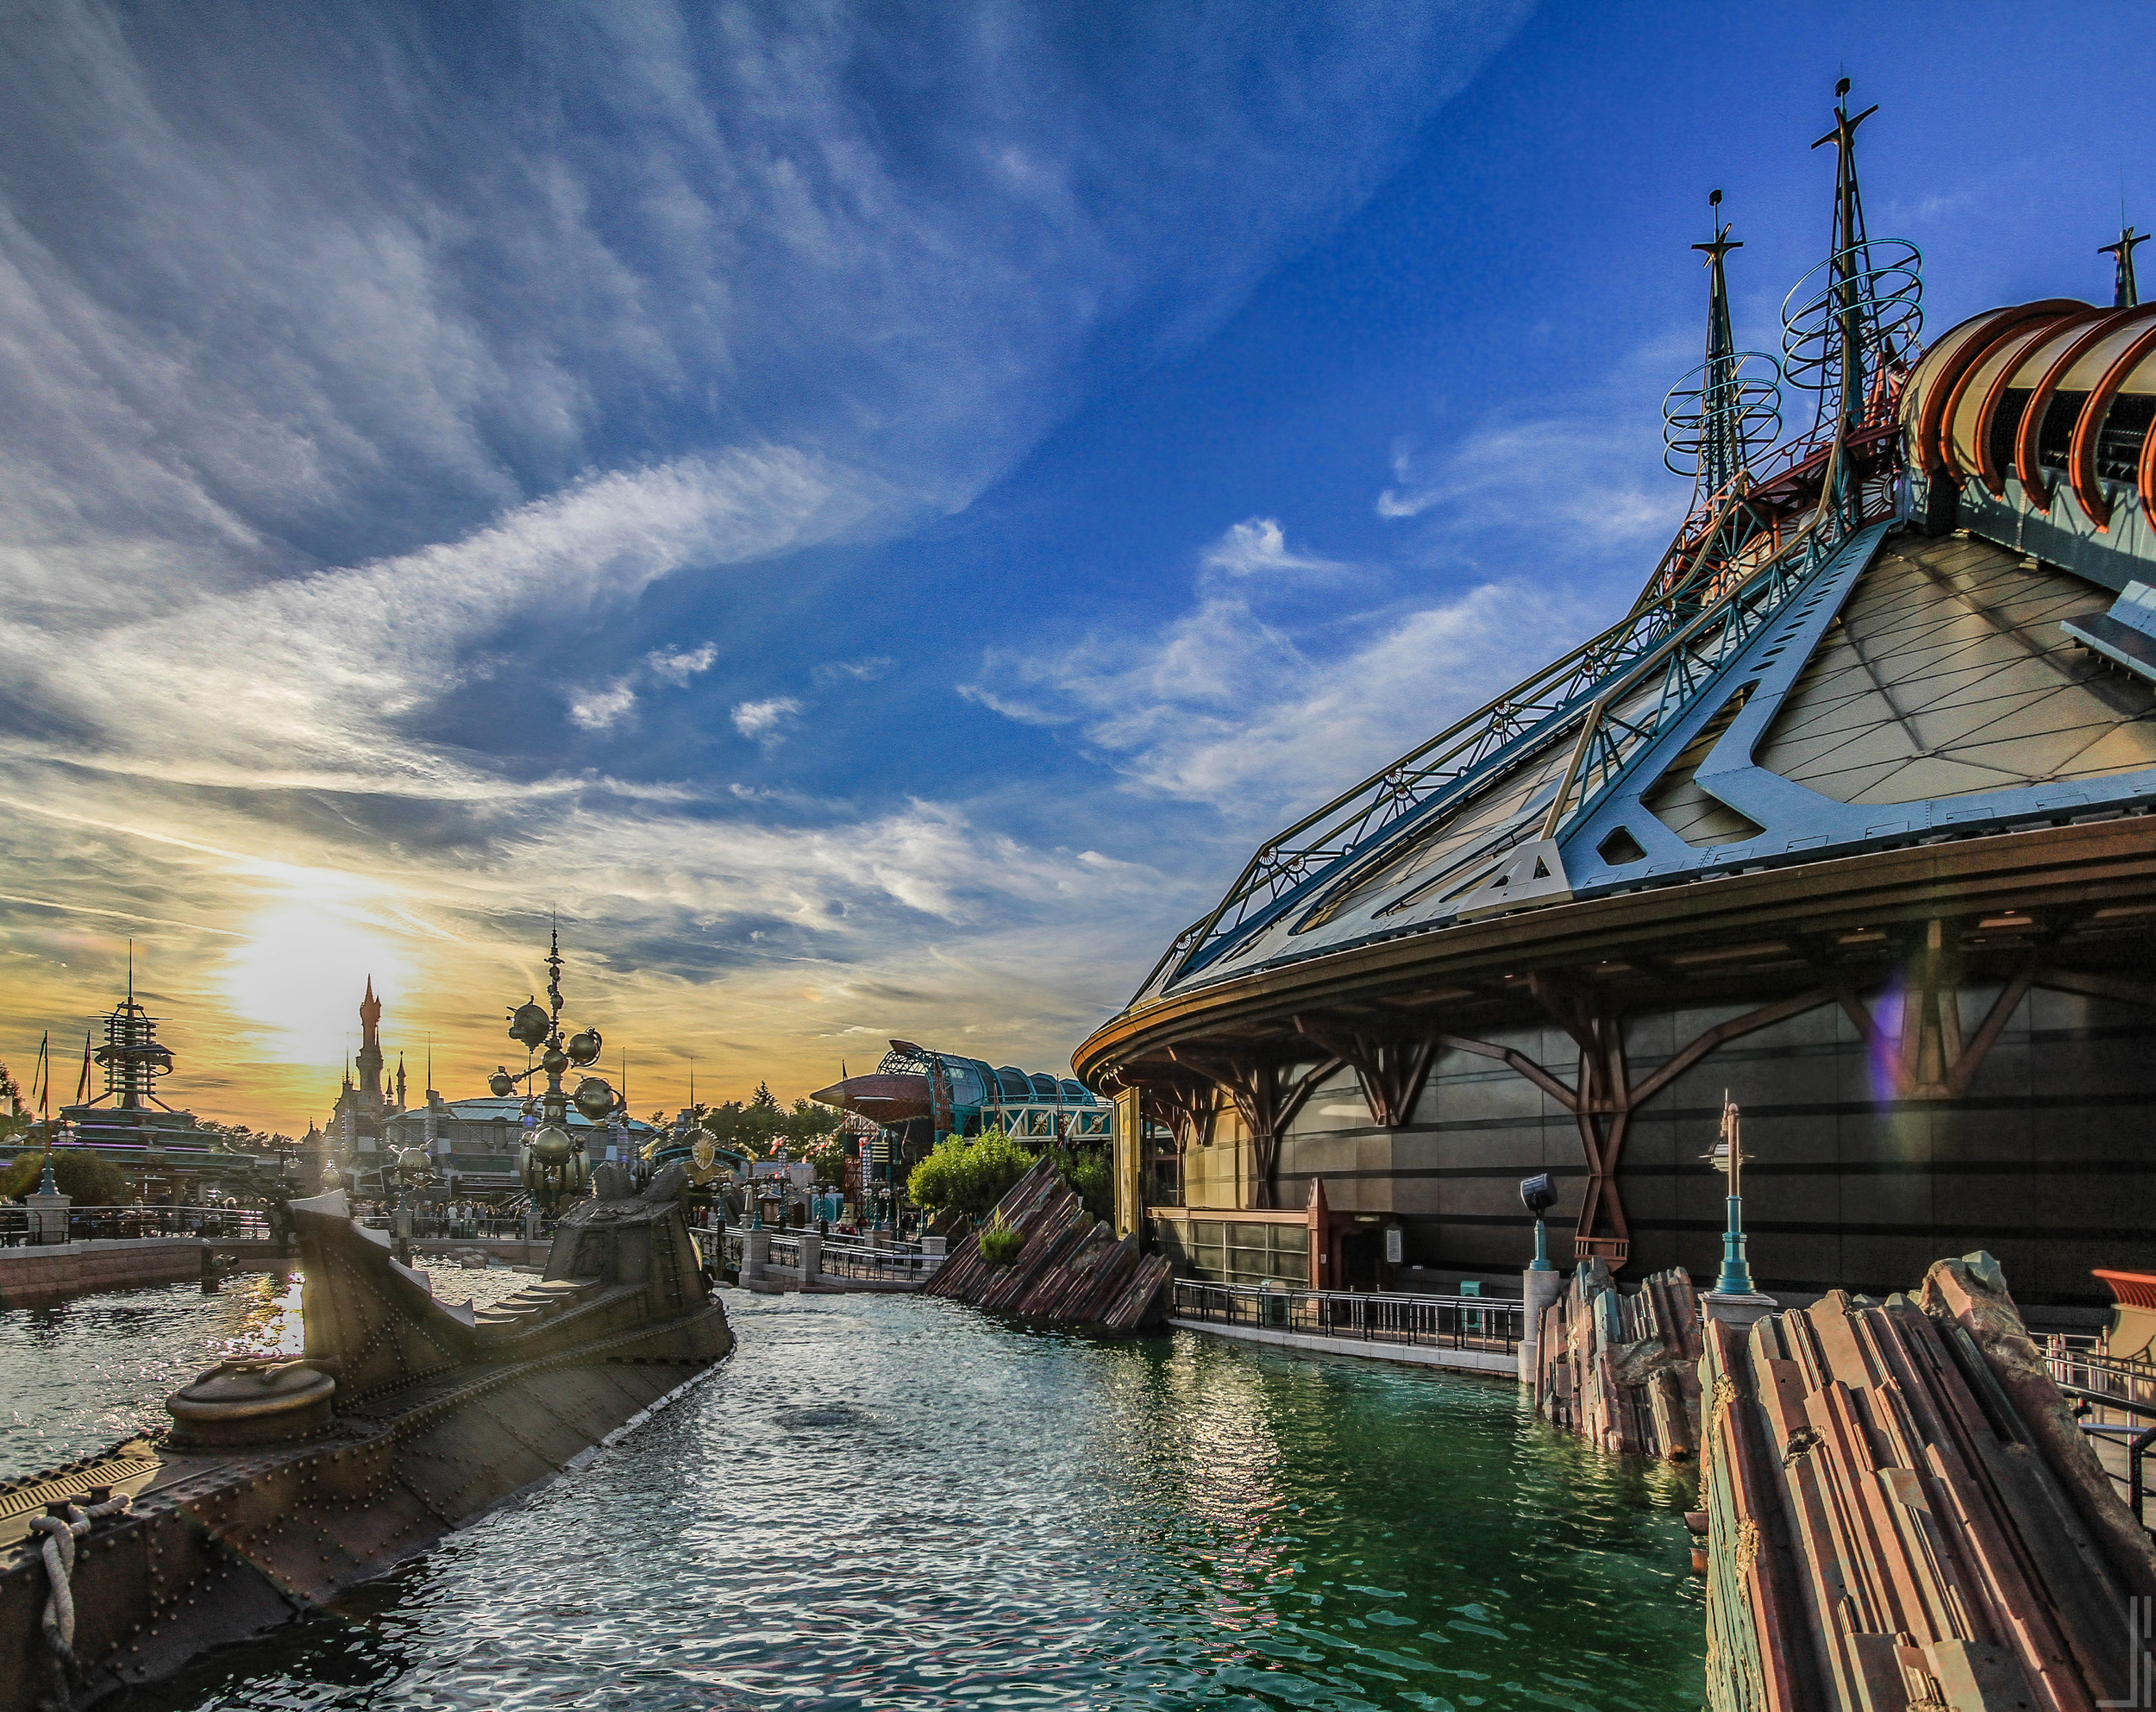 SpaceMountain - Disney - Paris - Joris Bax - jbax.jpg